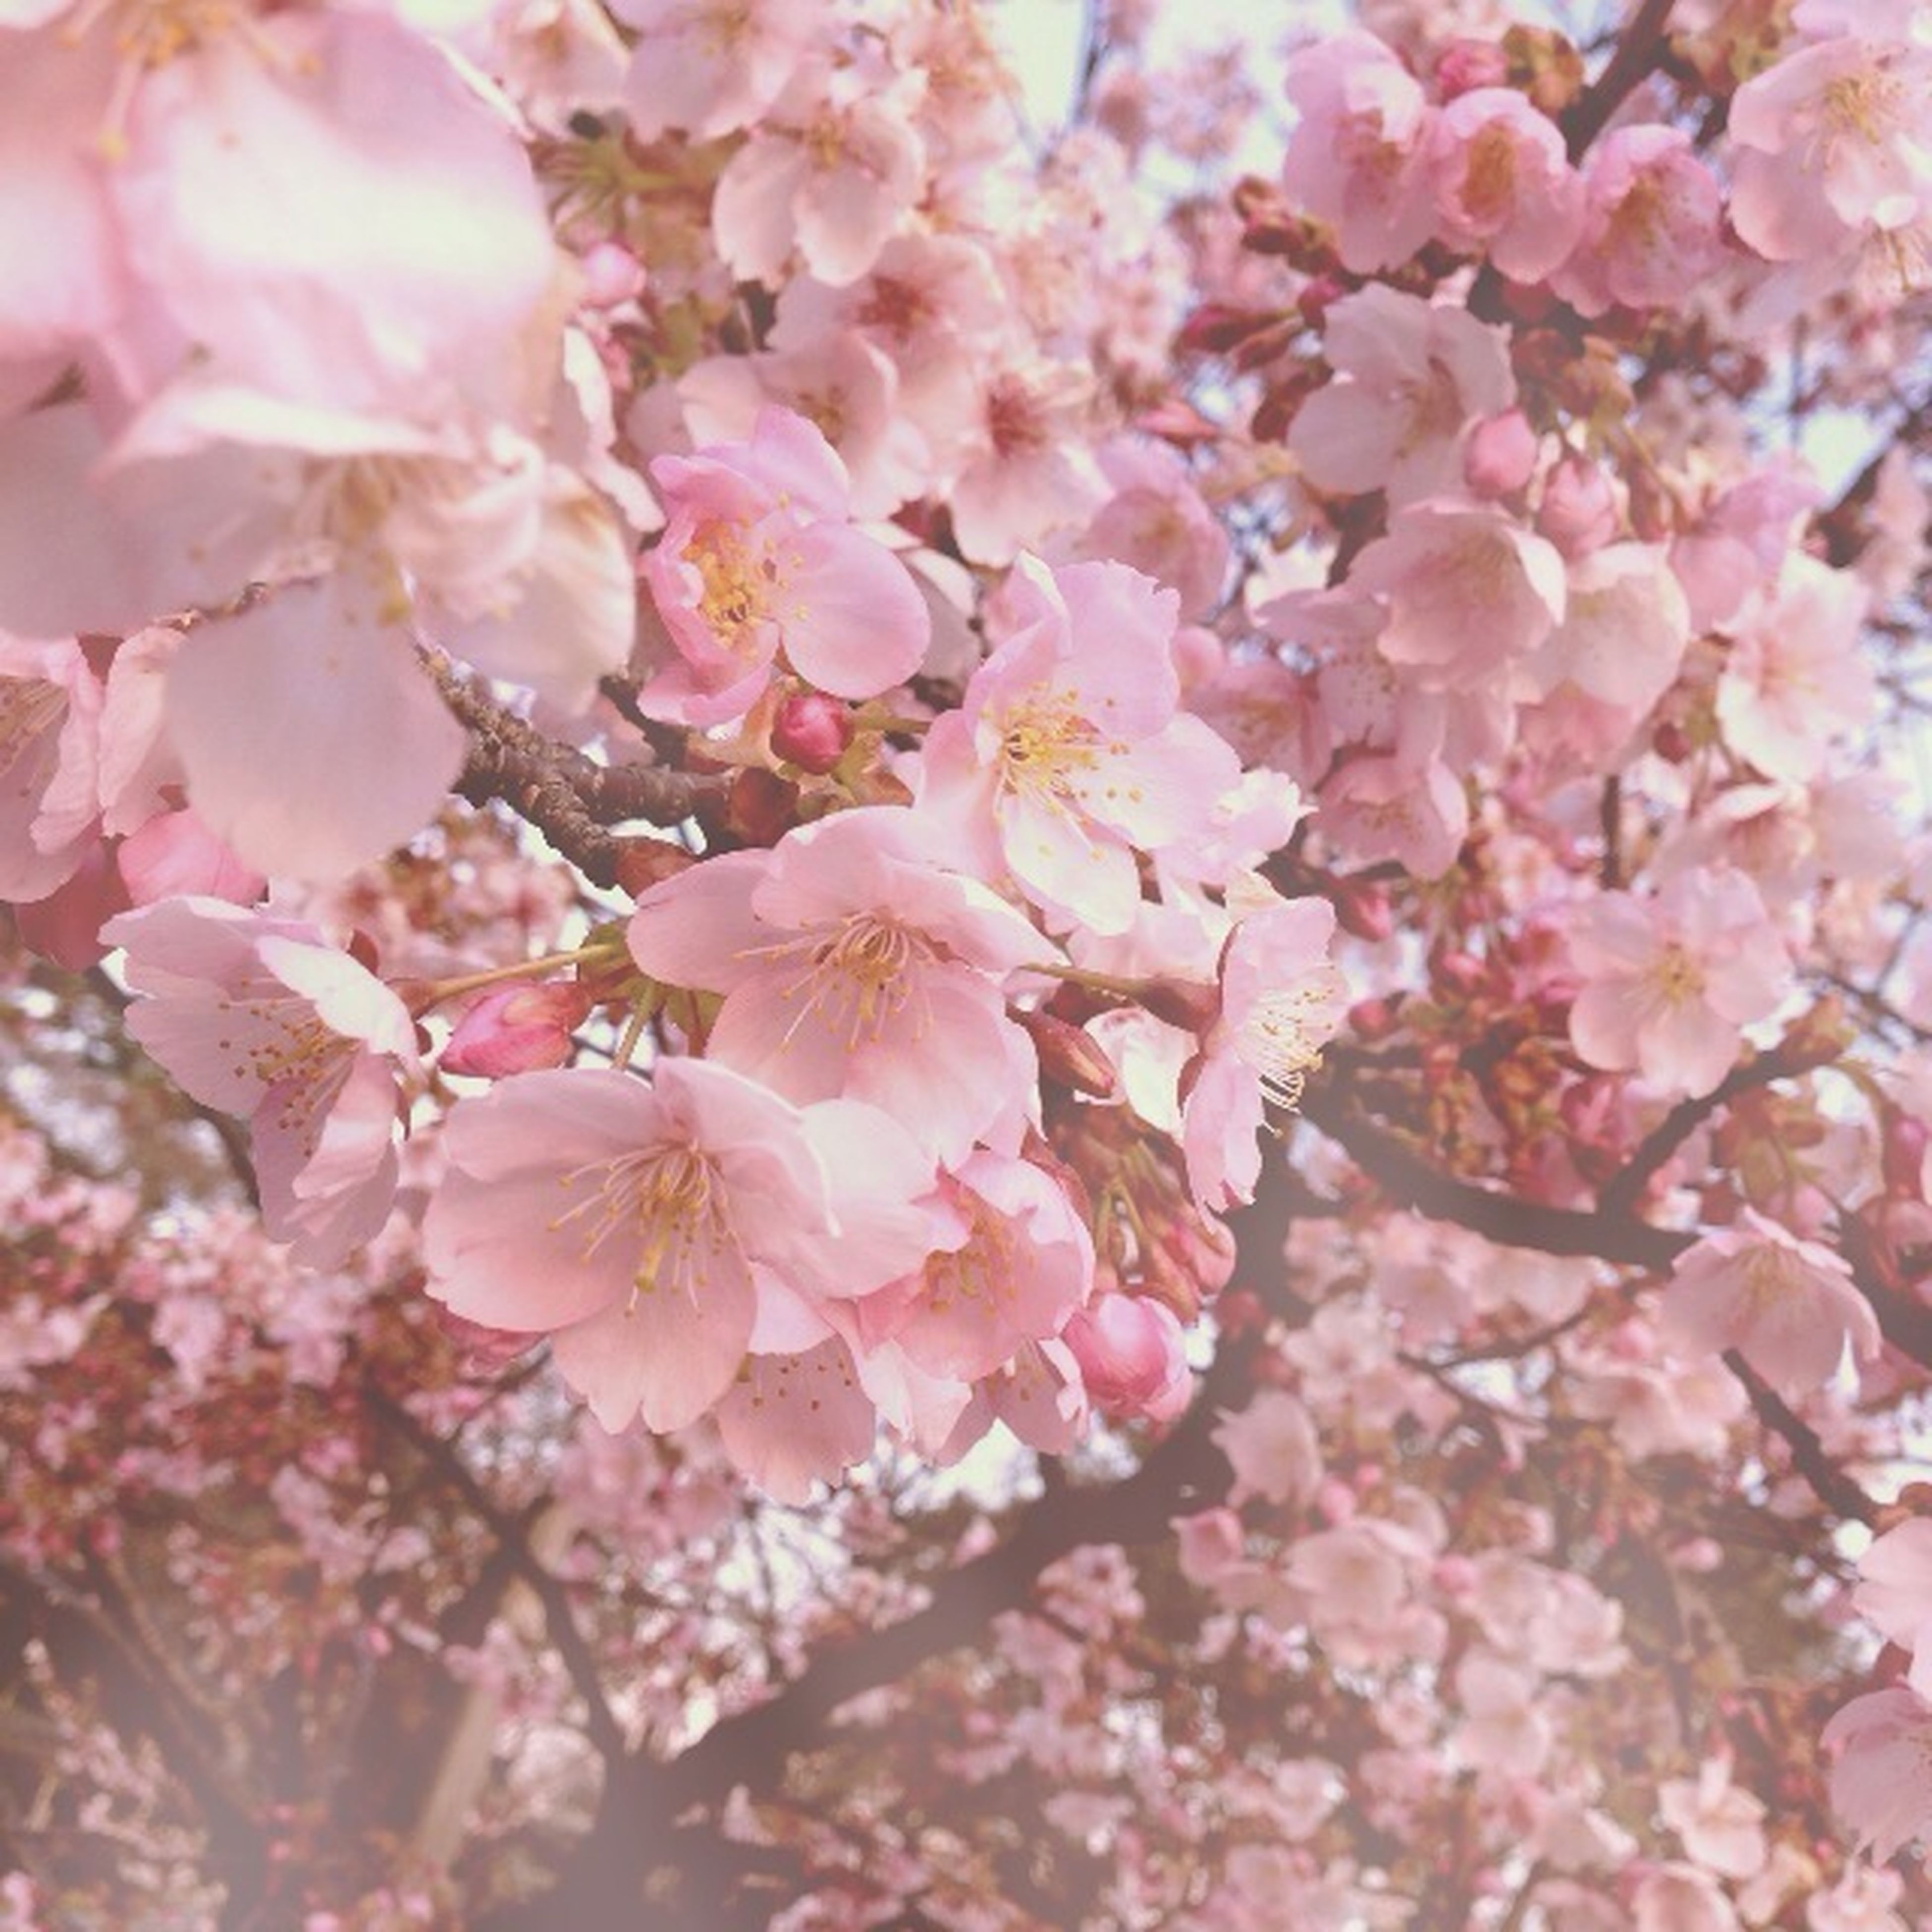 flower, freshness, fragility, pink color, growth, beauty in nature, cherry blossom, branch, tree, blossom, nature, petal, cherry tree, in bloom, pink, blooming, springtime, backgrounds, close-up, low angle view